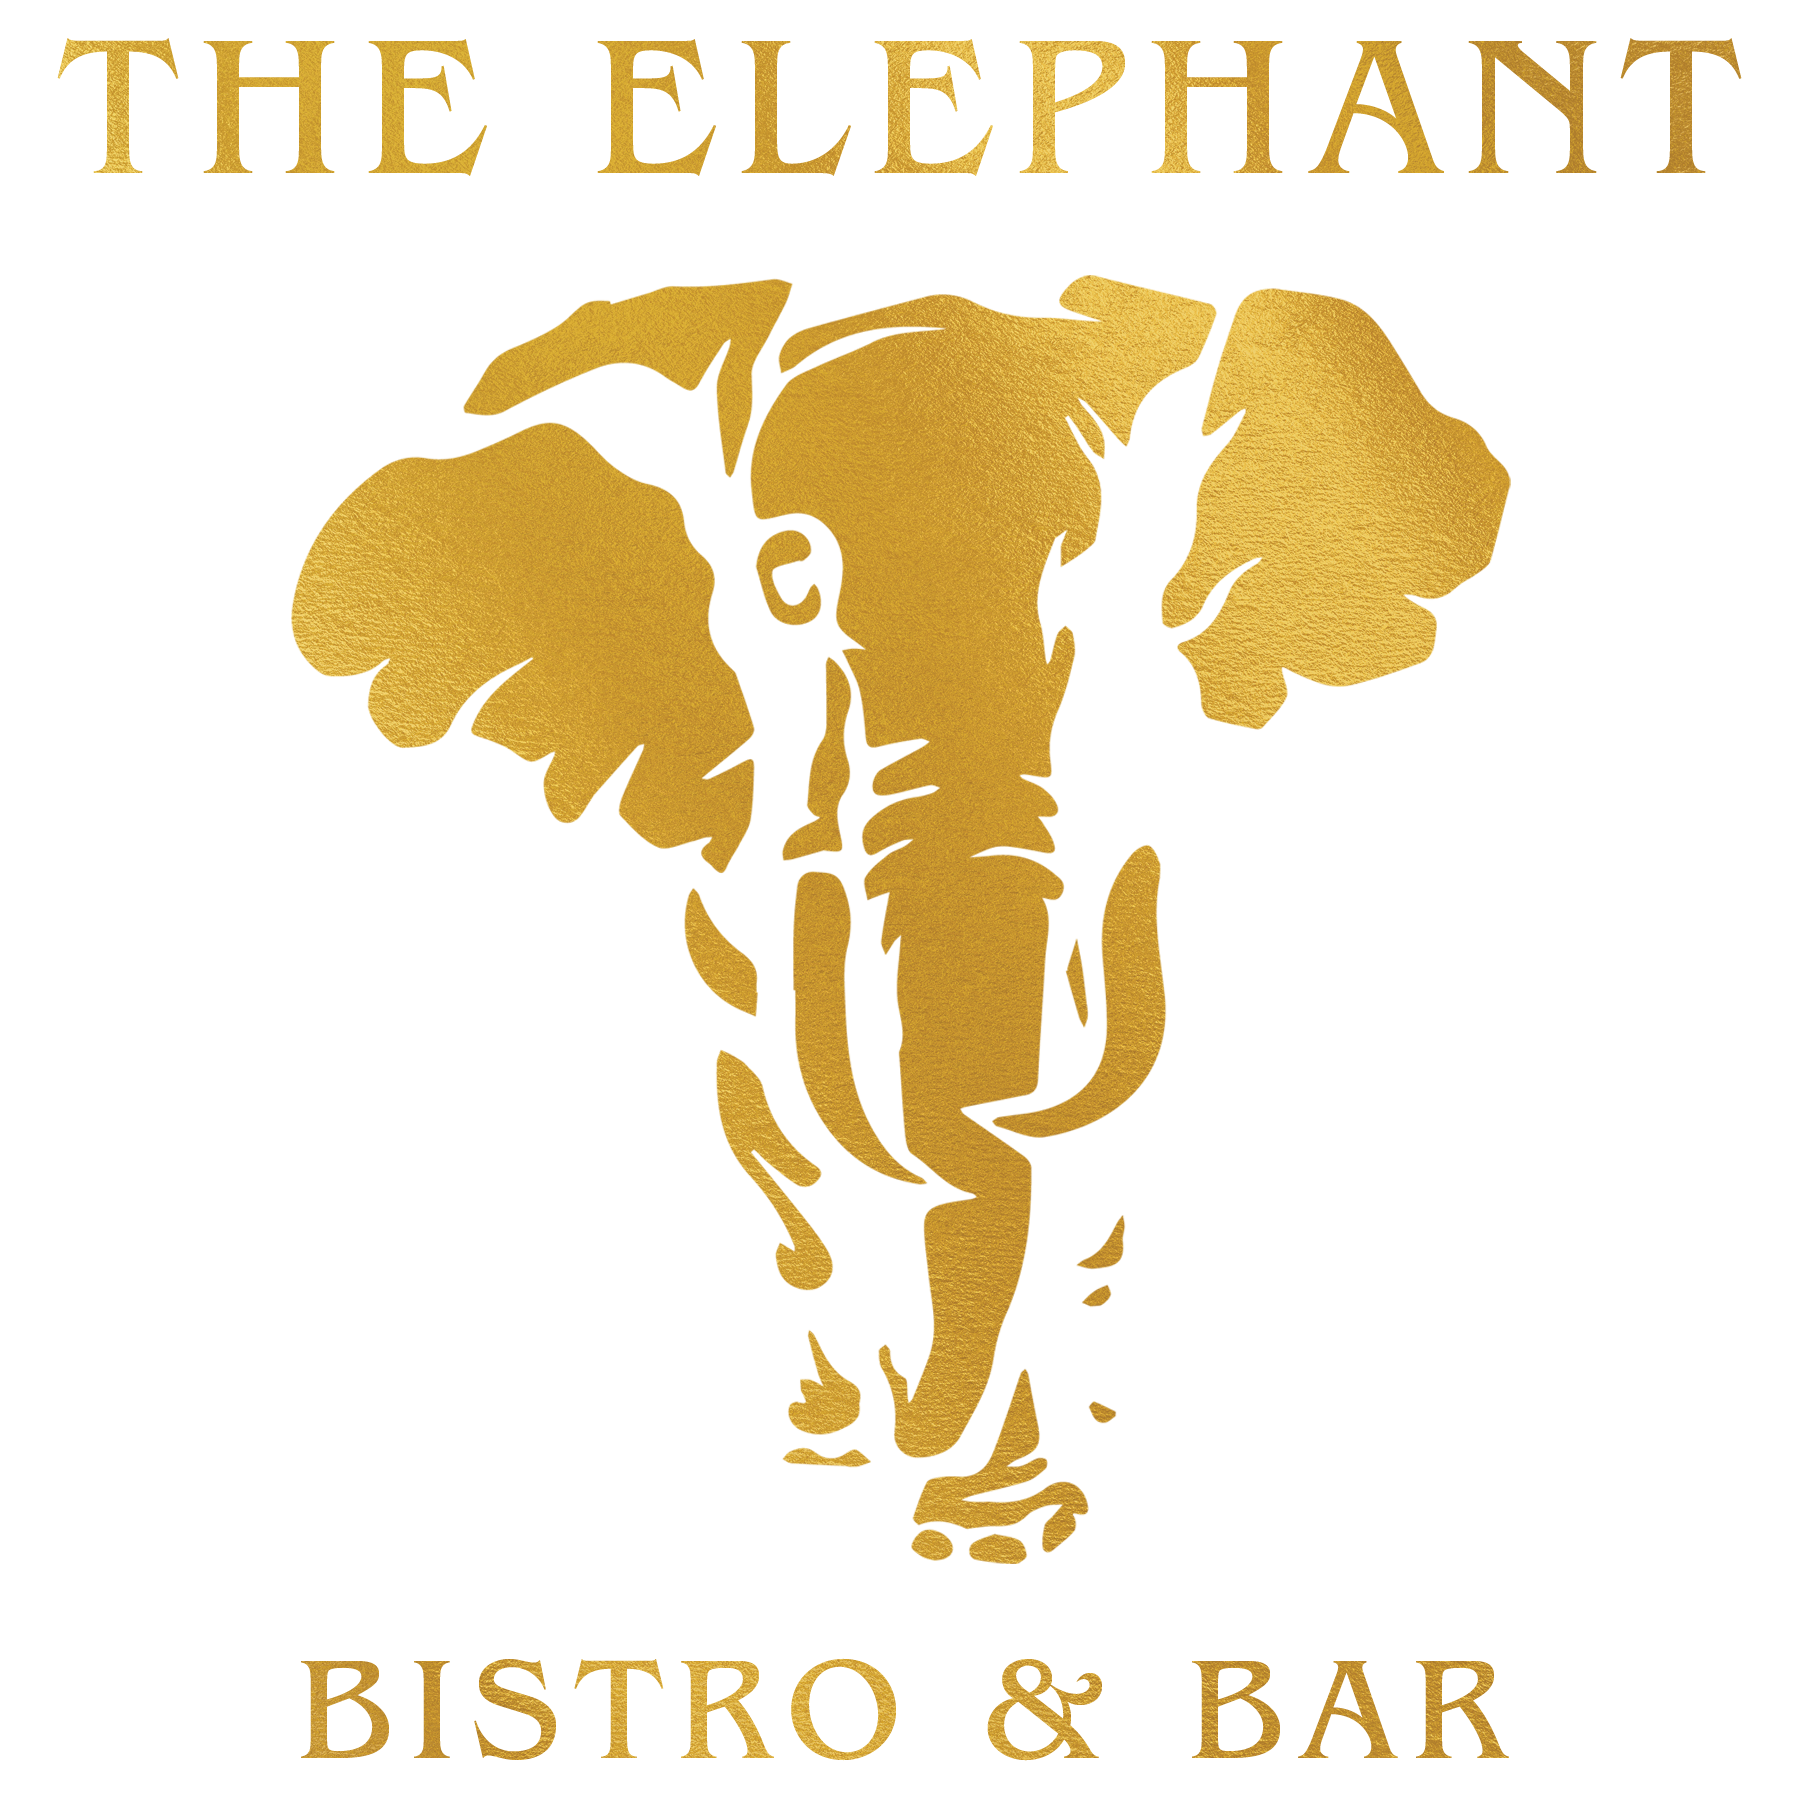 The Elephant uses plum Creek wagyu beef for sale